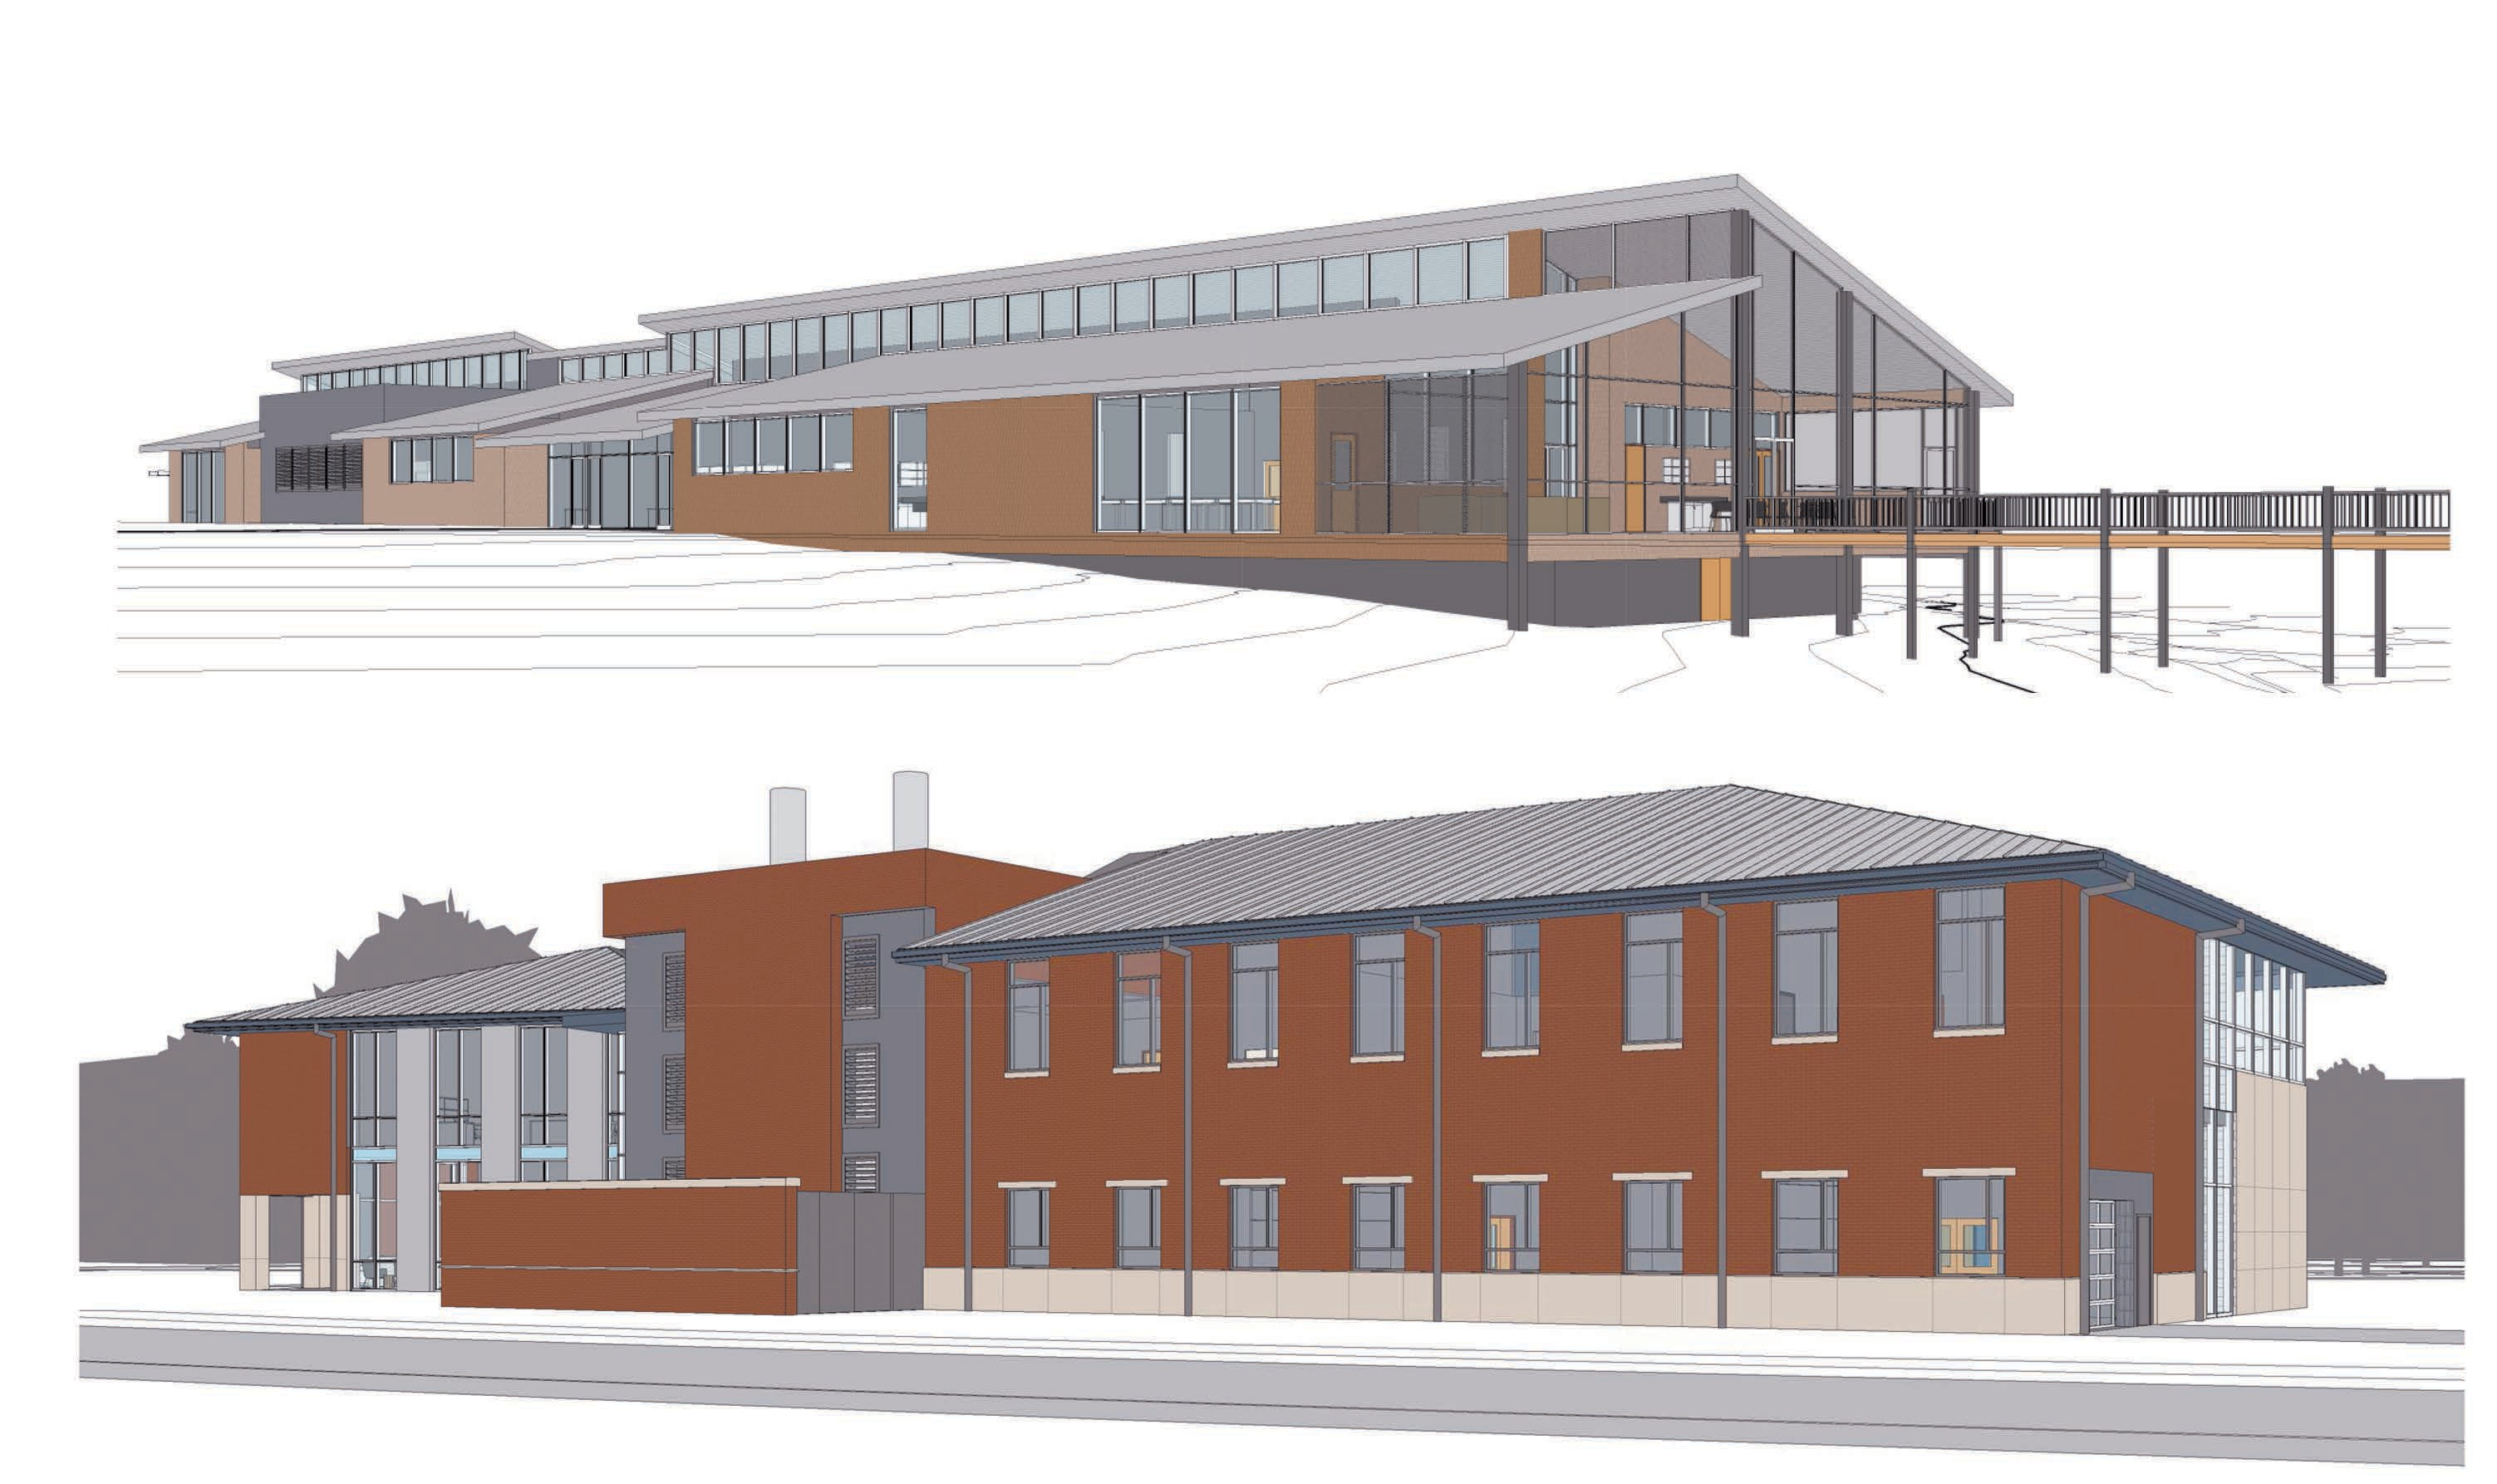 (Top) Rendering of the new marine sciences laboratory facility located on Livingston Ave (Bottom) College of Sciences and Technology (COST) buildings on SSU Campus